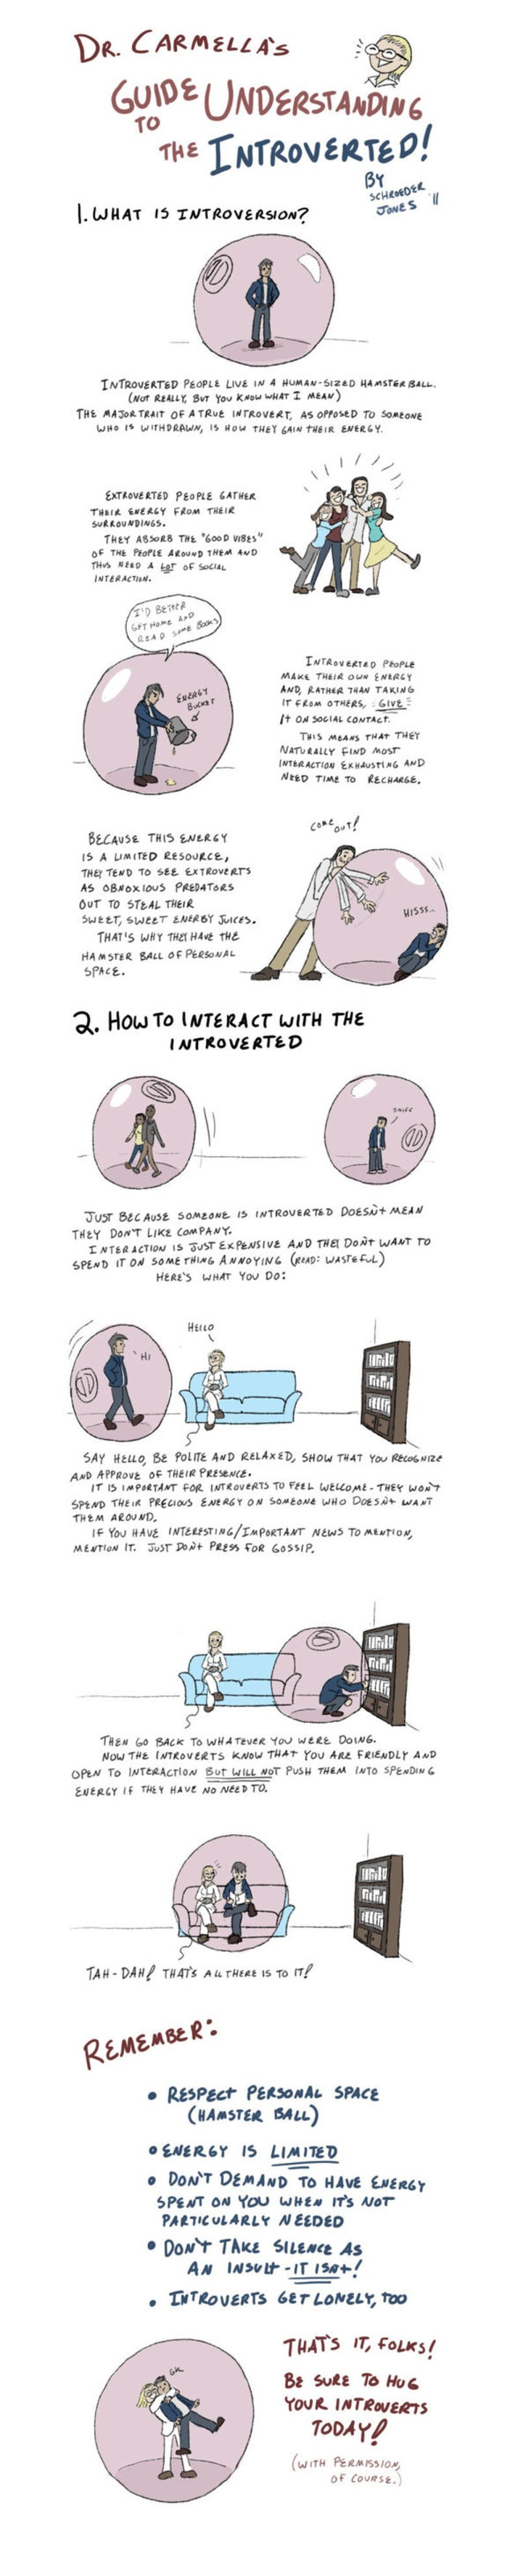 Your Guide To Interacting With An Introvert   Knowledge Broker   Scoop.it